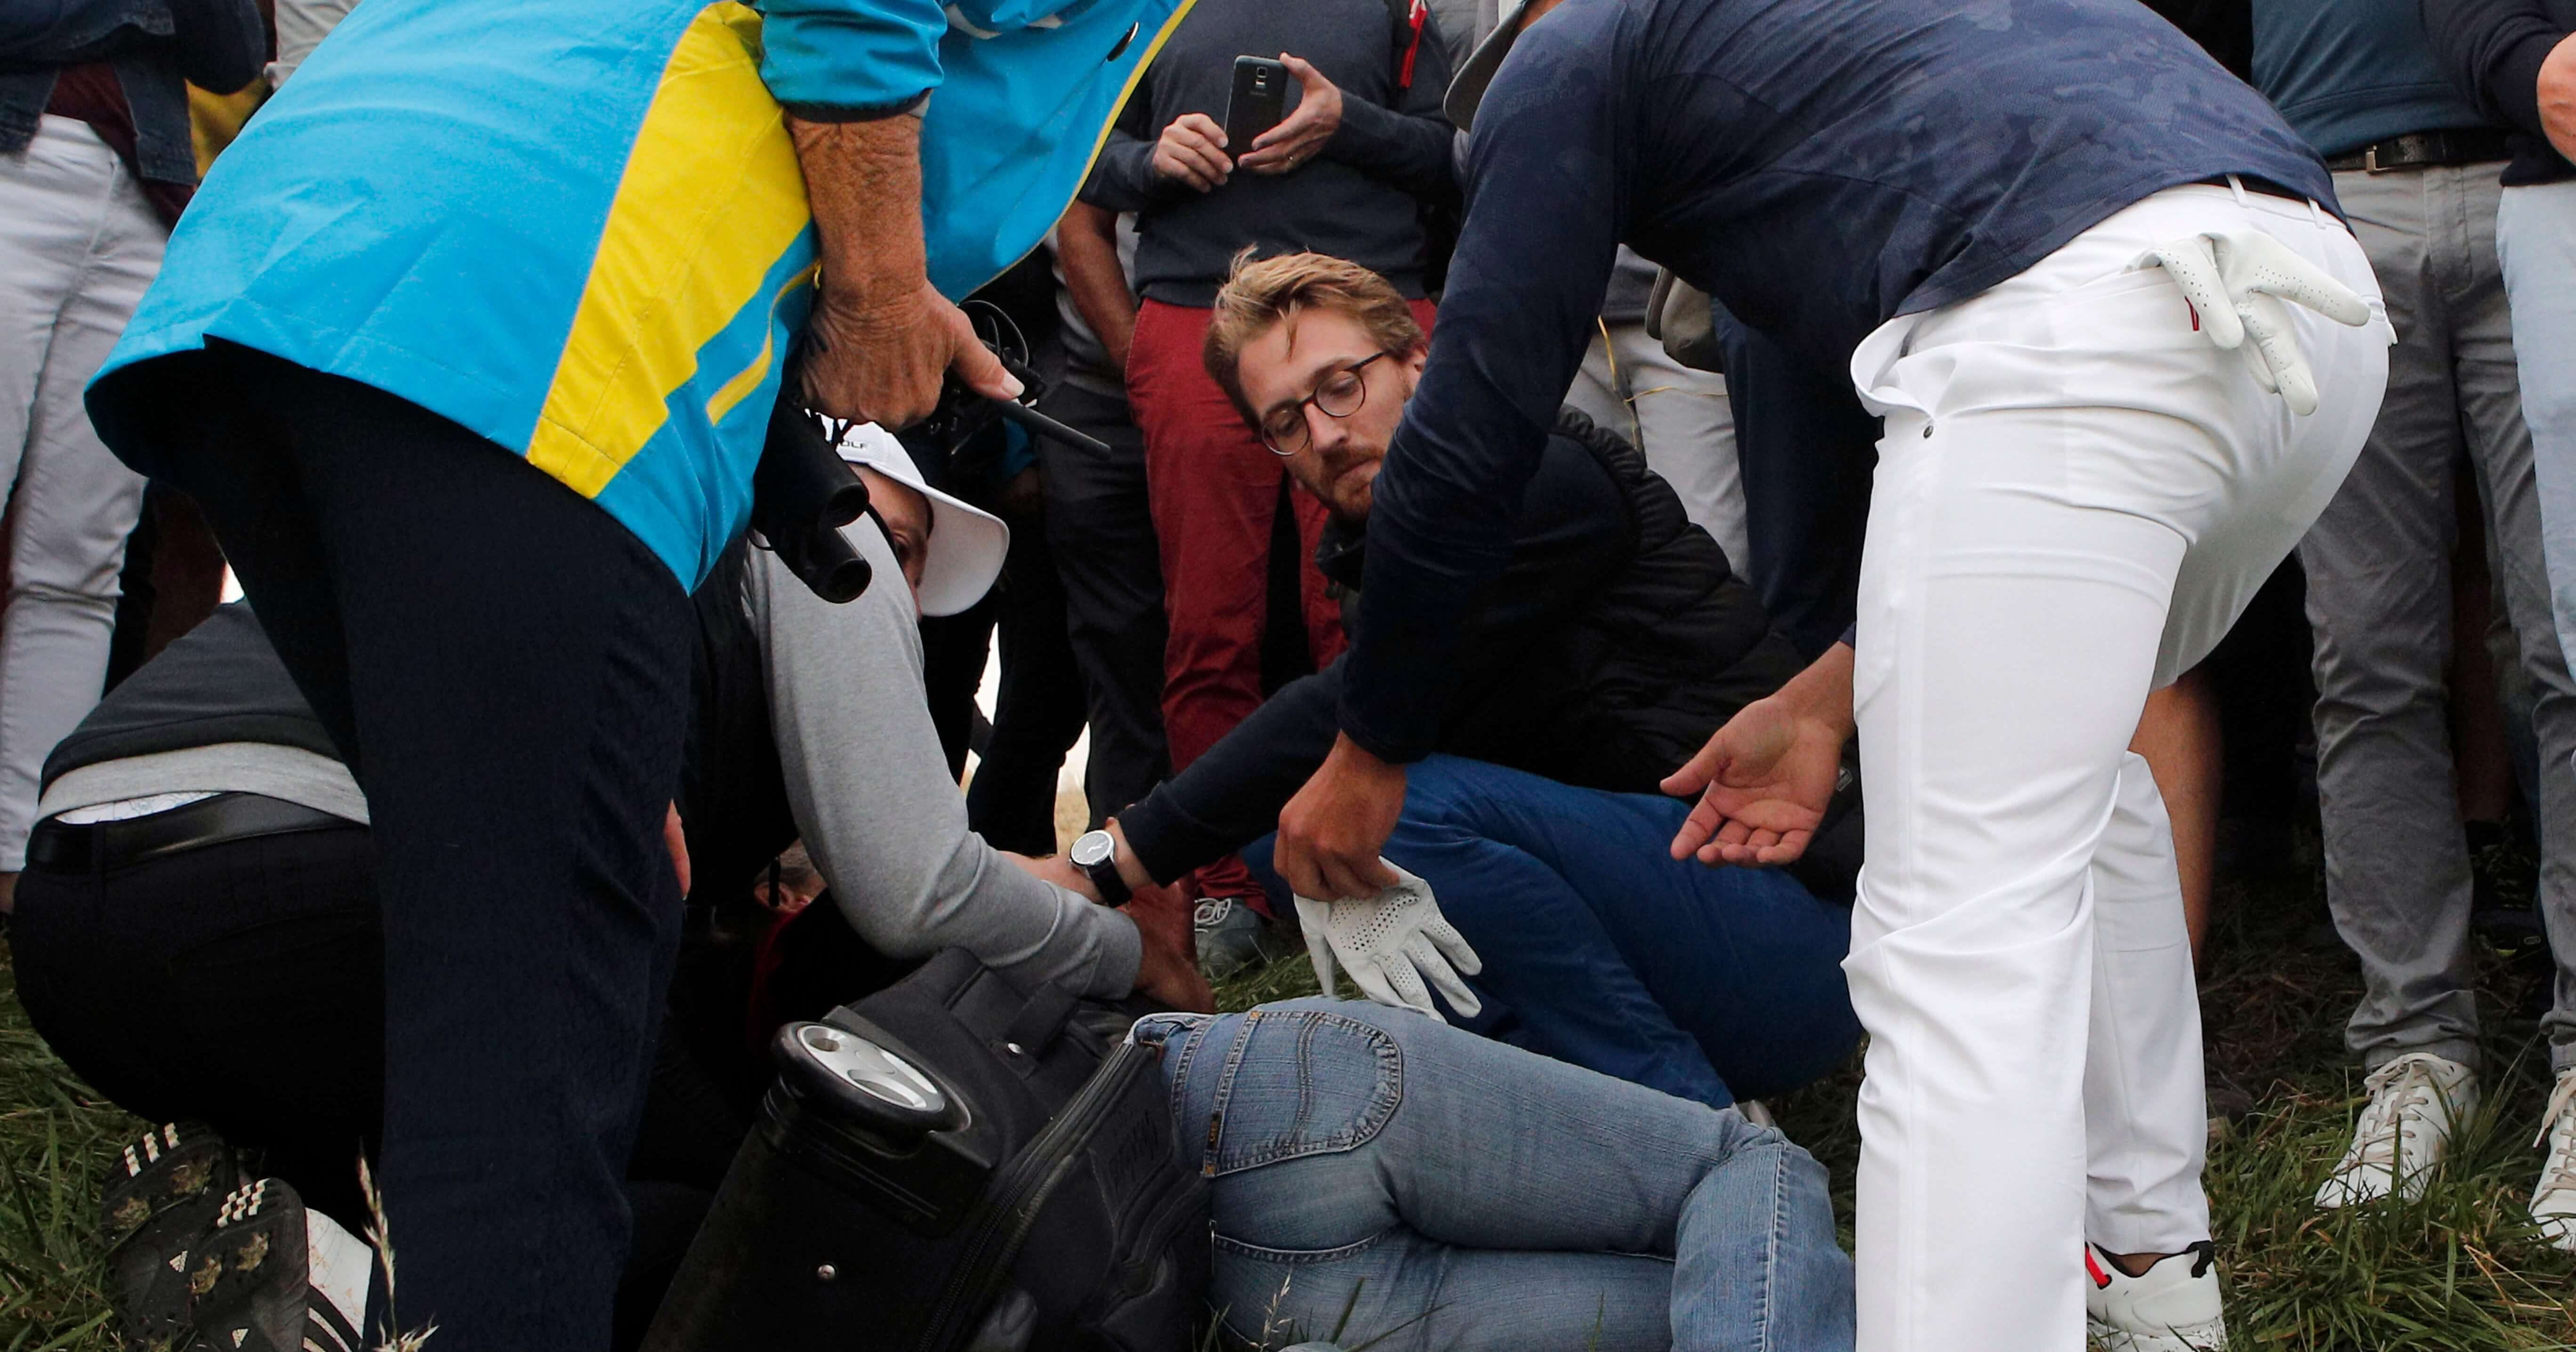 Brooks Koepka offers a golf glove to an unidentified woman Friday after his ball hit her on the 6th hole during a fourball match on the opening day of the 42nd Ryder Cup at Le Golf National in Saint-Quentin-en-Yvelines, outside Paris.